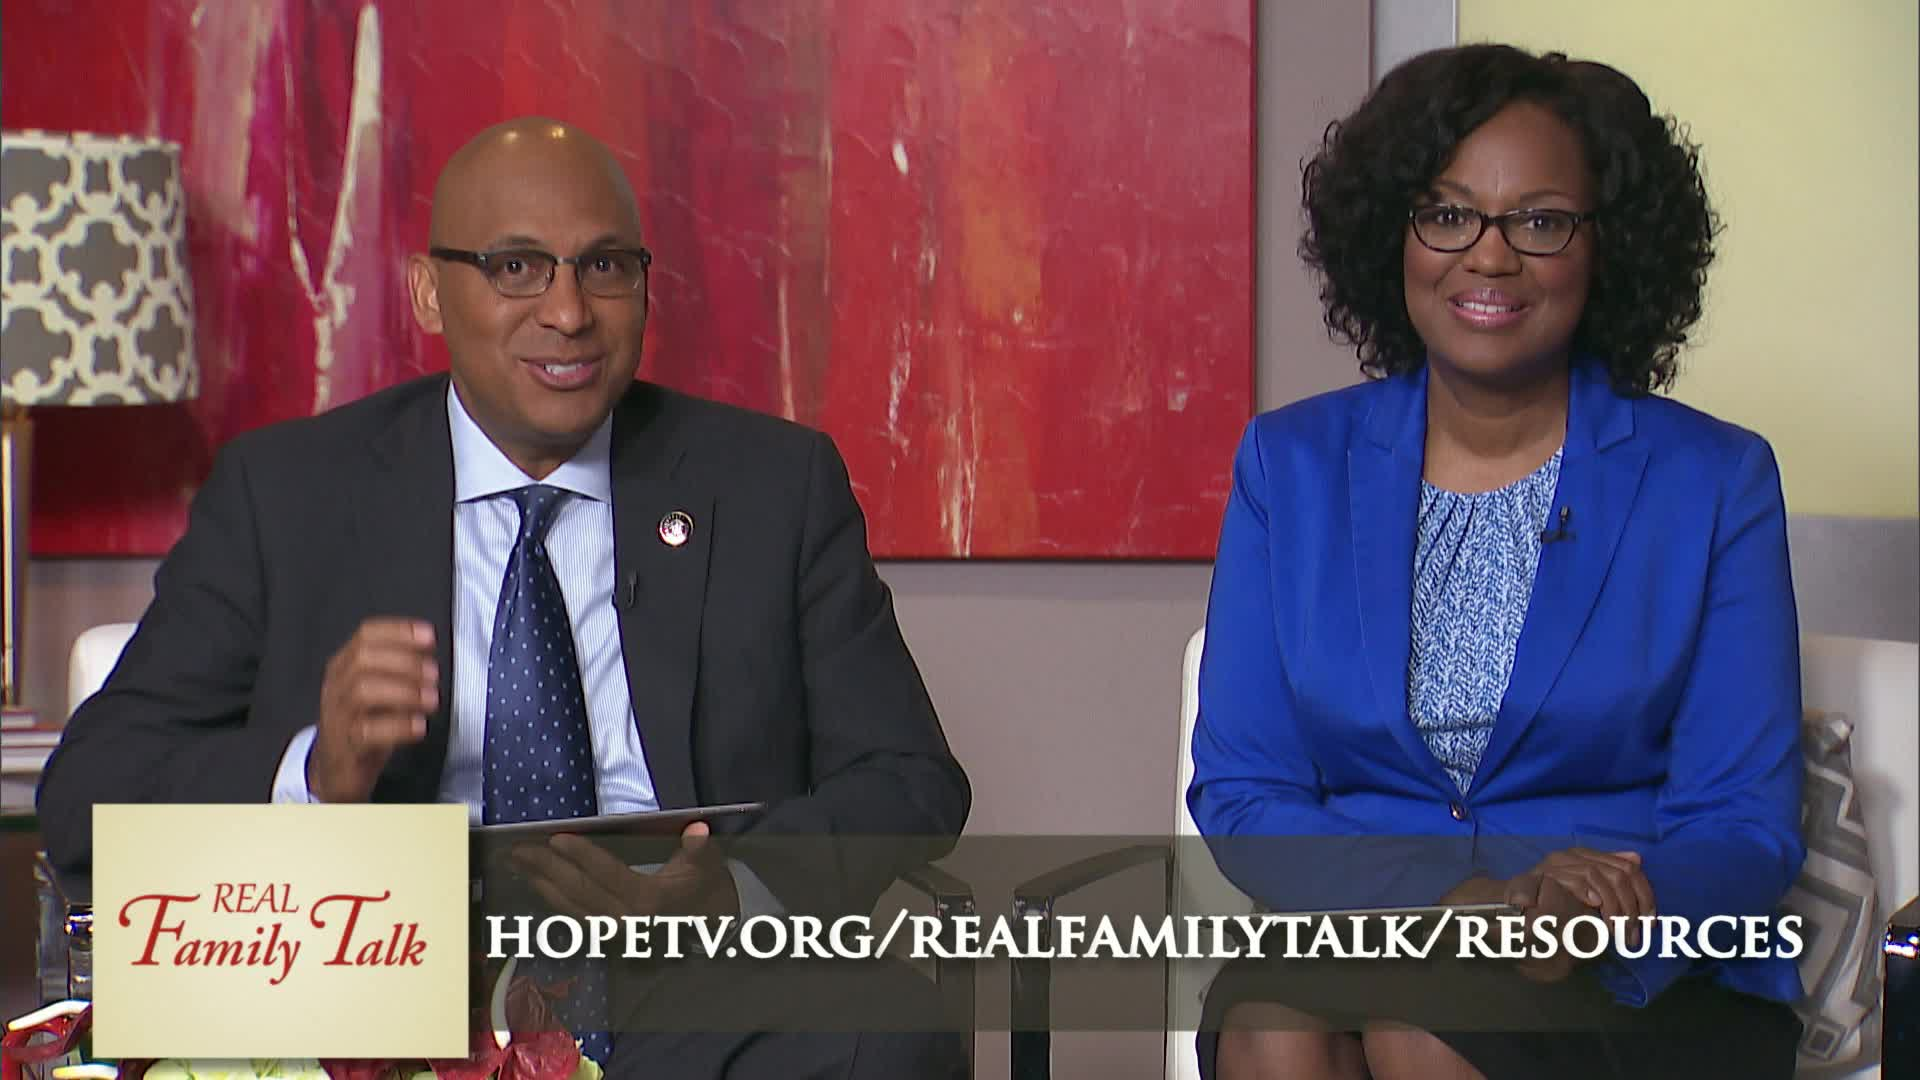 Same Sex Attraction / Real Family Talk: Hope Channel